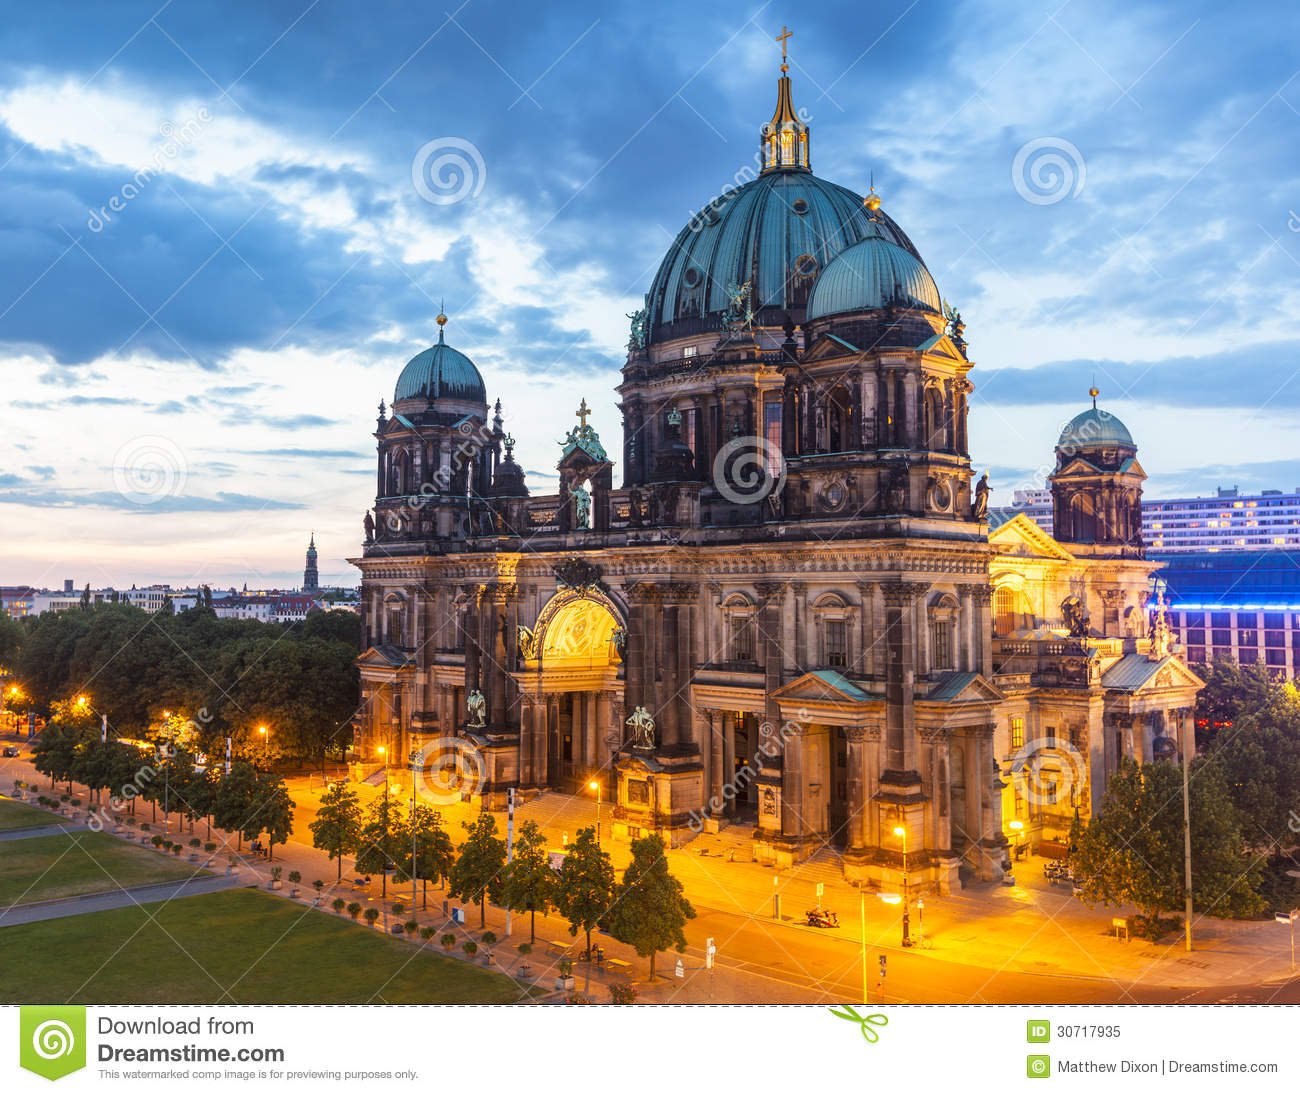 berliner dom berlin cathedral germany stock image image of building monuments 30717935. Black Bedroom Furniture Sets. Home Design Ideas